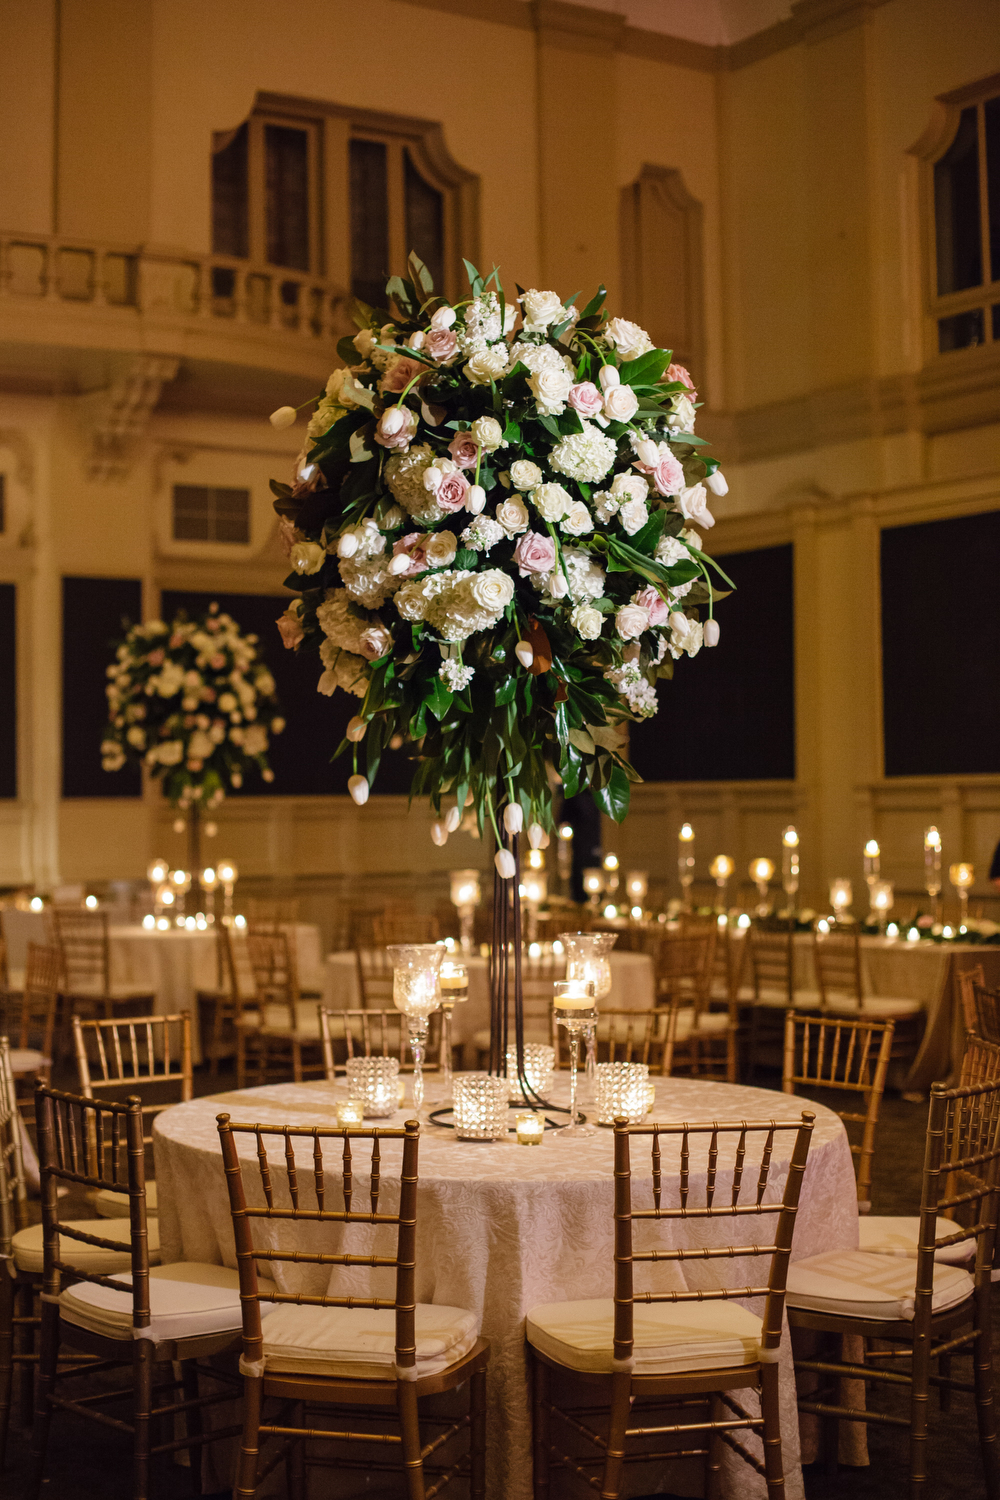 closeup of tall white and green wedding centerpiece arrangements on round tables with gold chairs in a wedding reception